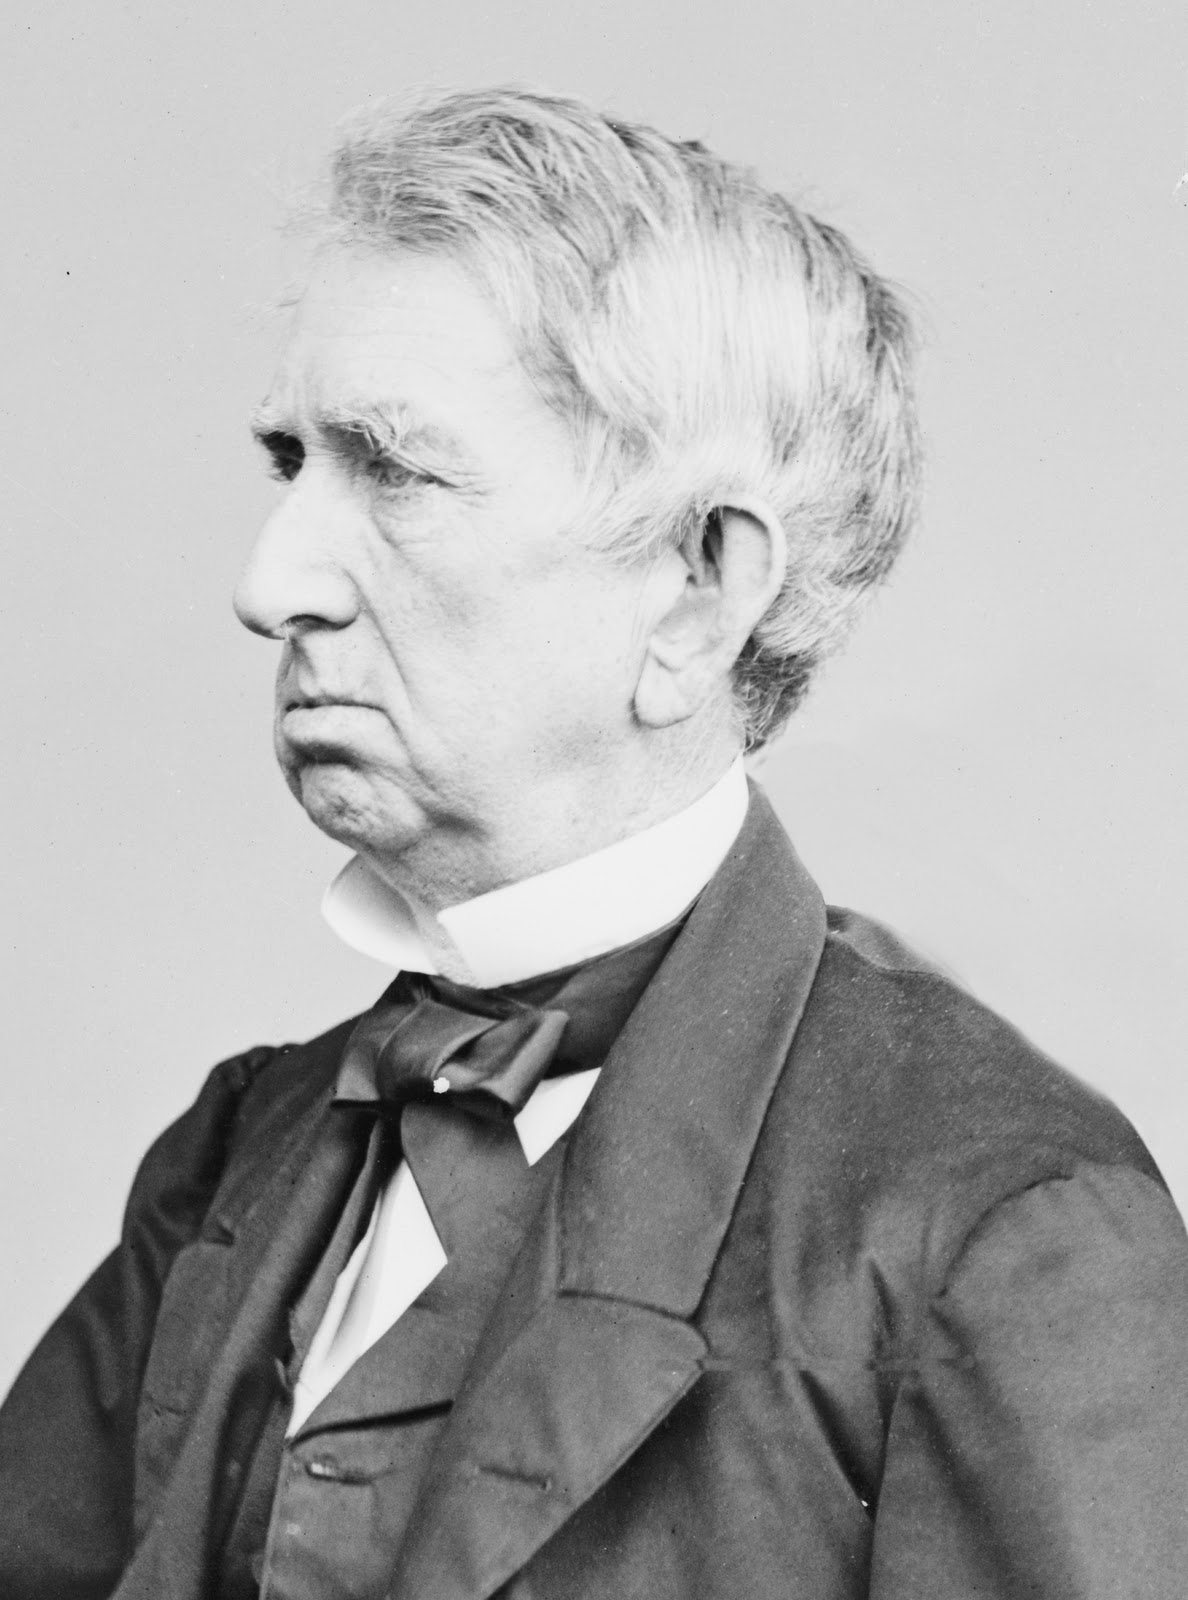 william henry seward jpg i h8 txt msgs essay